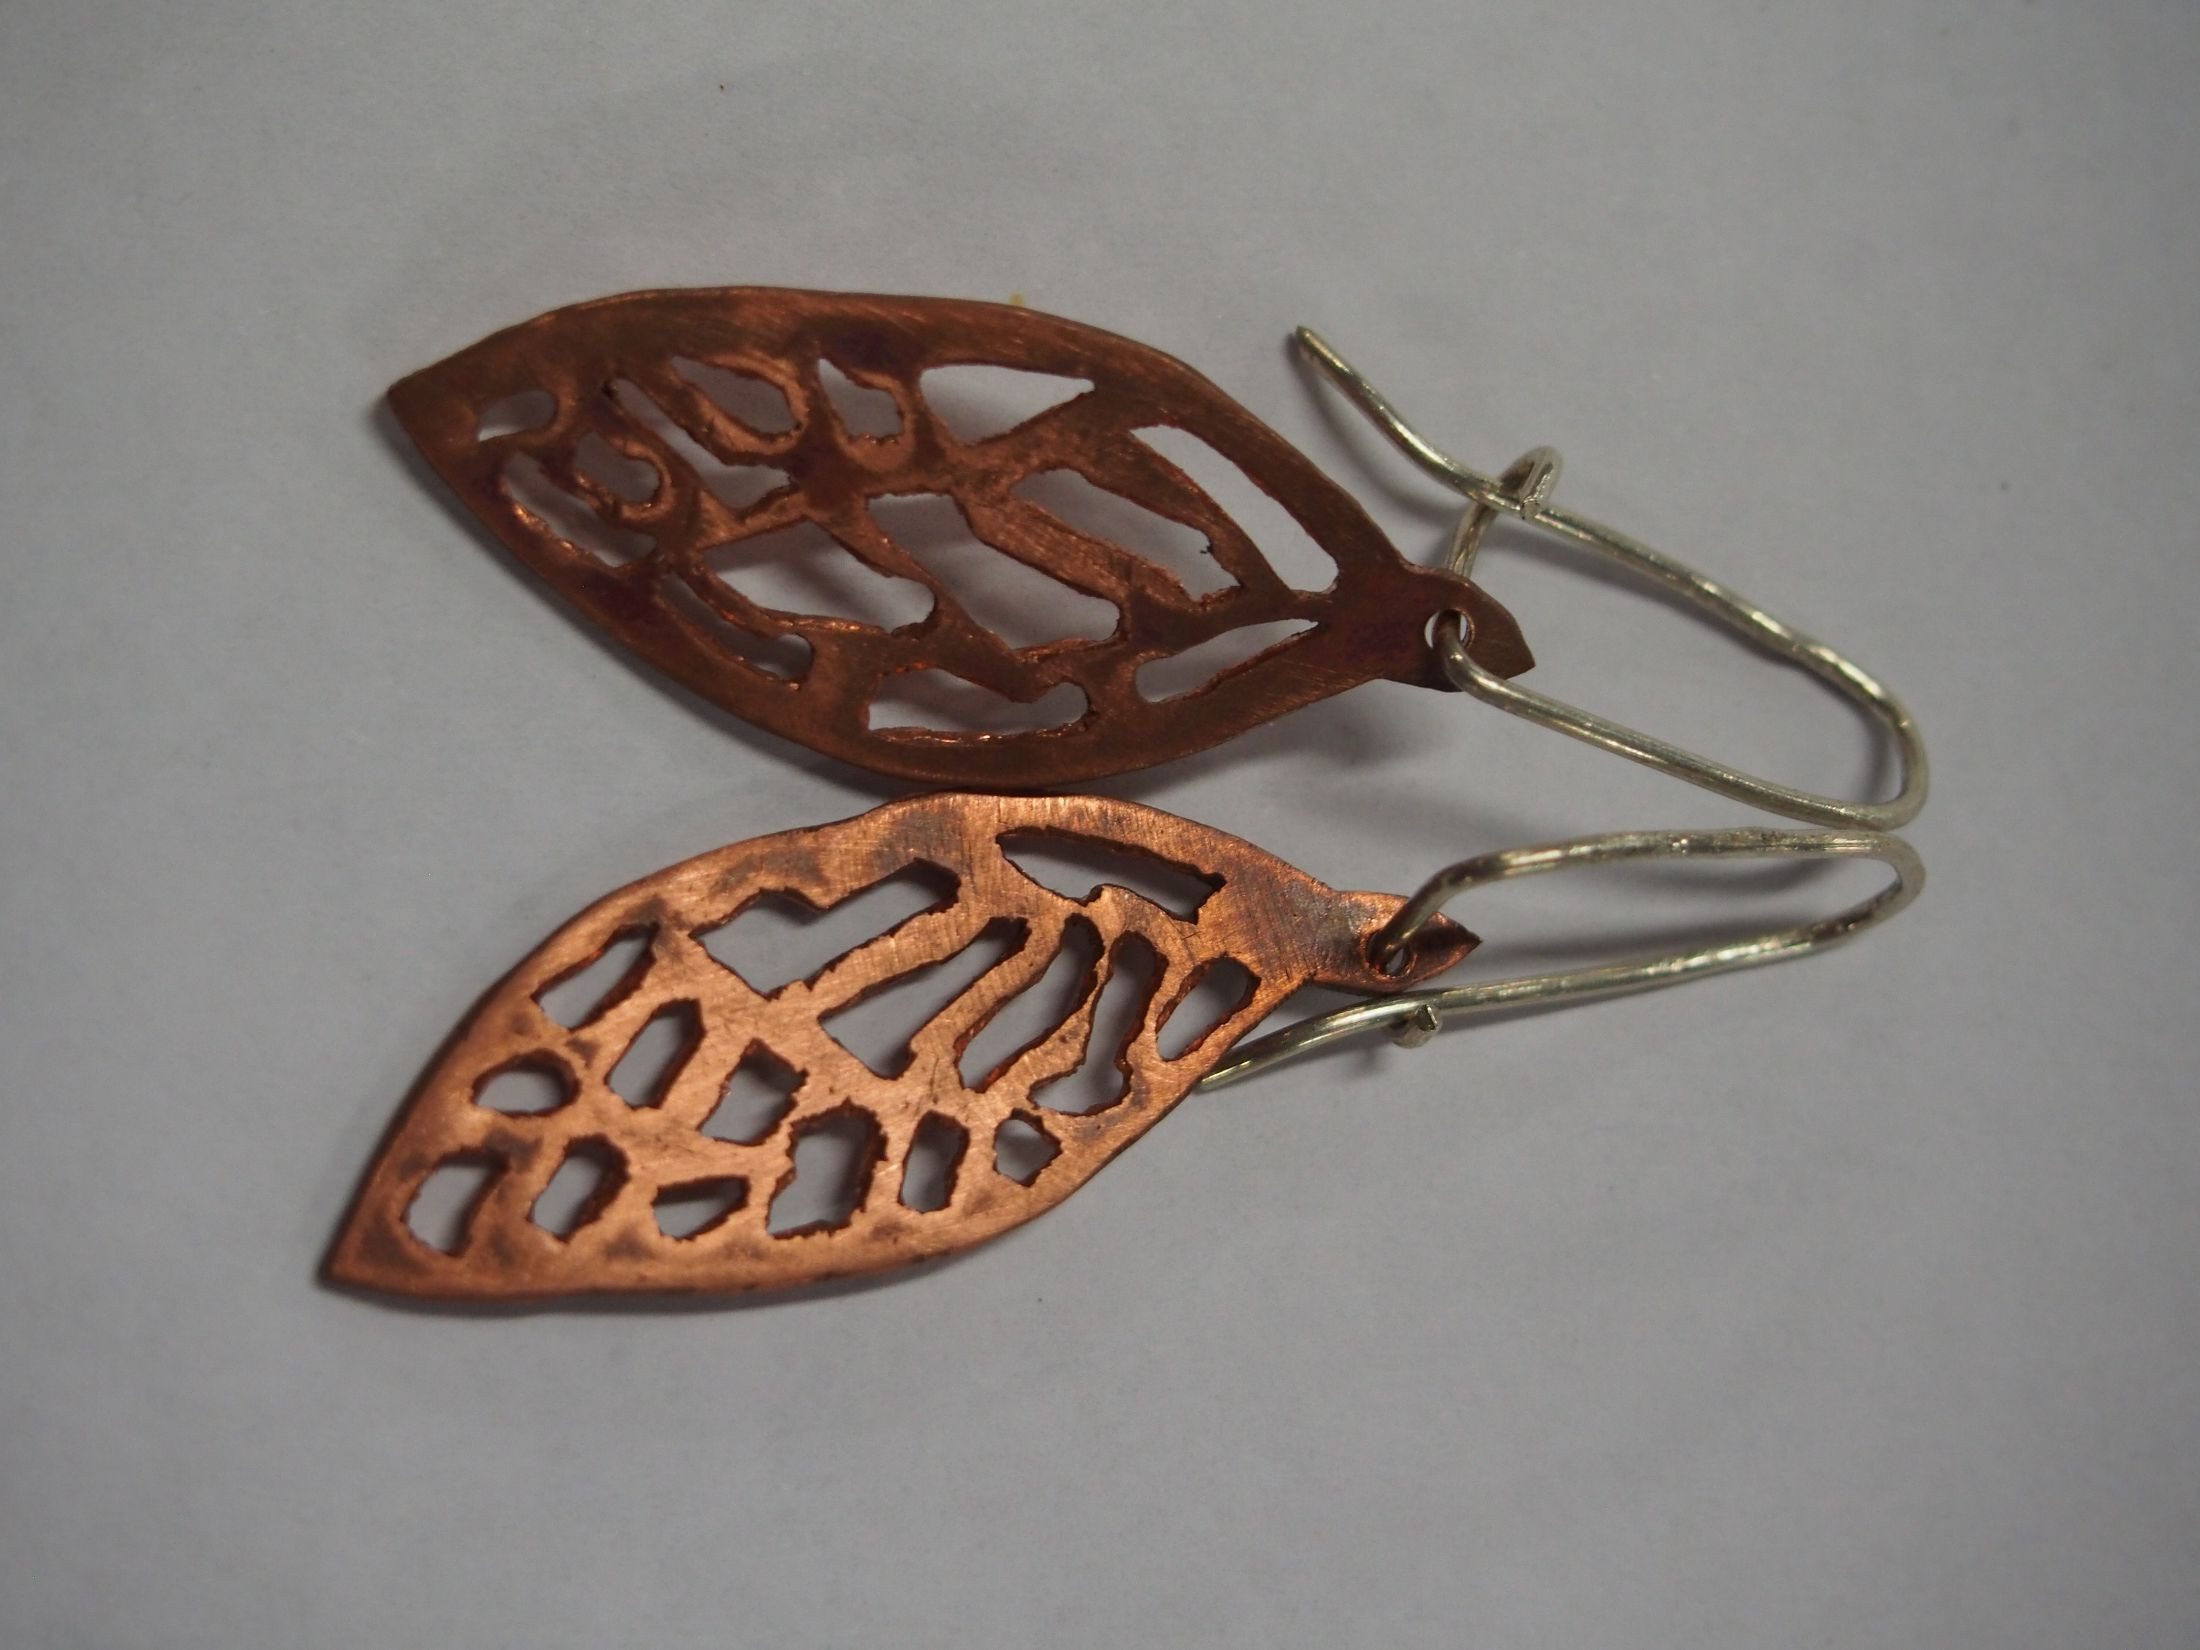 METALSMITHING & JEWELLERY - Introduction Thursdays FULL CLASS